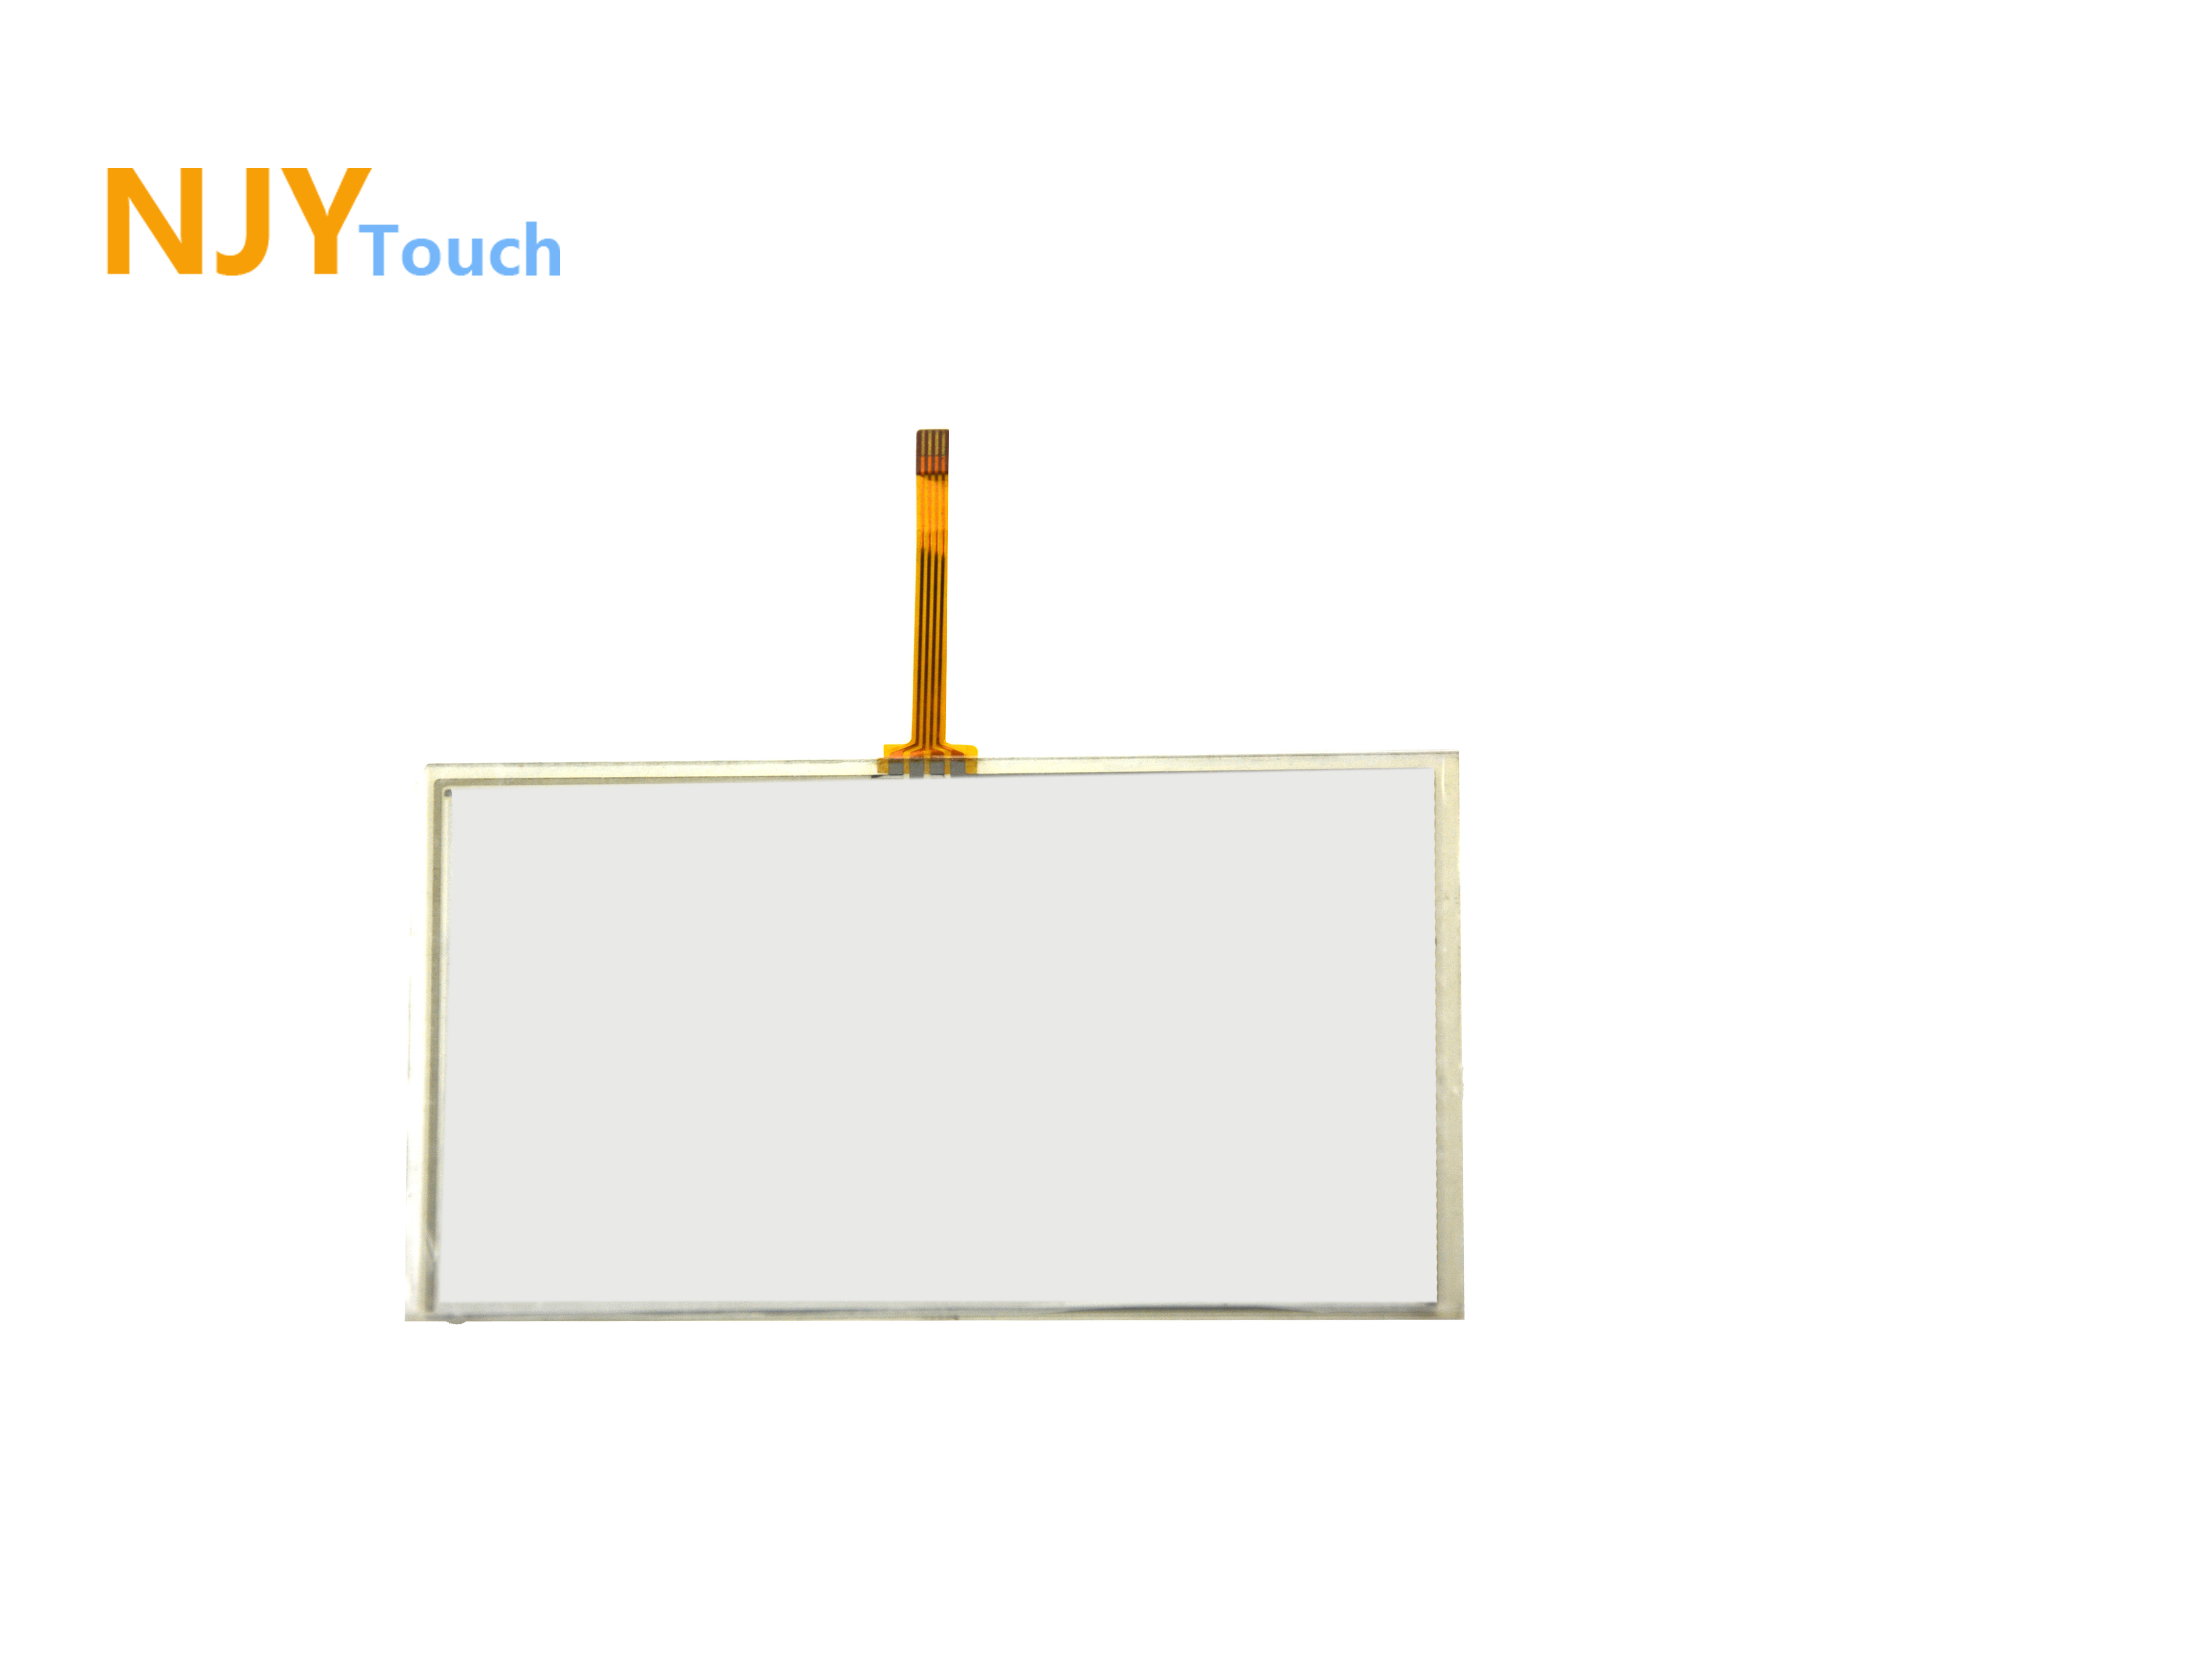 6inch 4 Wire Resistive Touch Panel Glass 152 x 87mm With USB Controller Card Kit